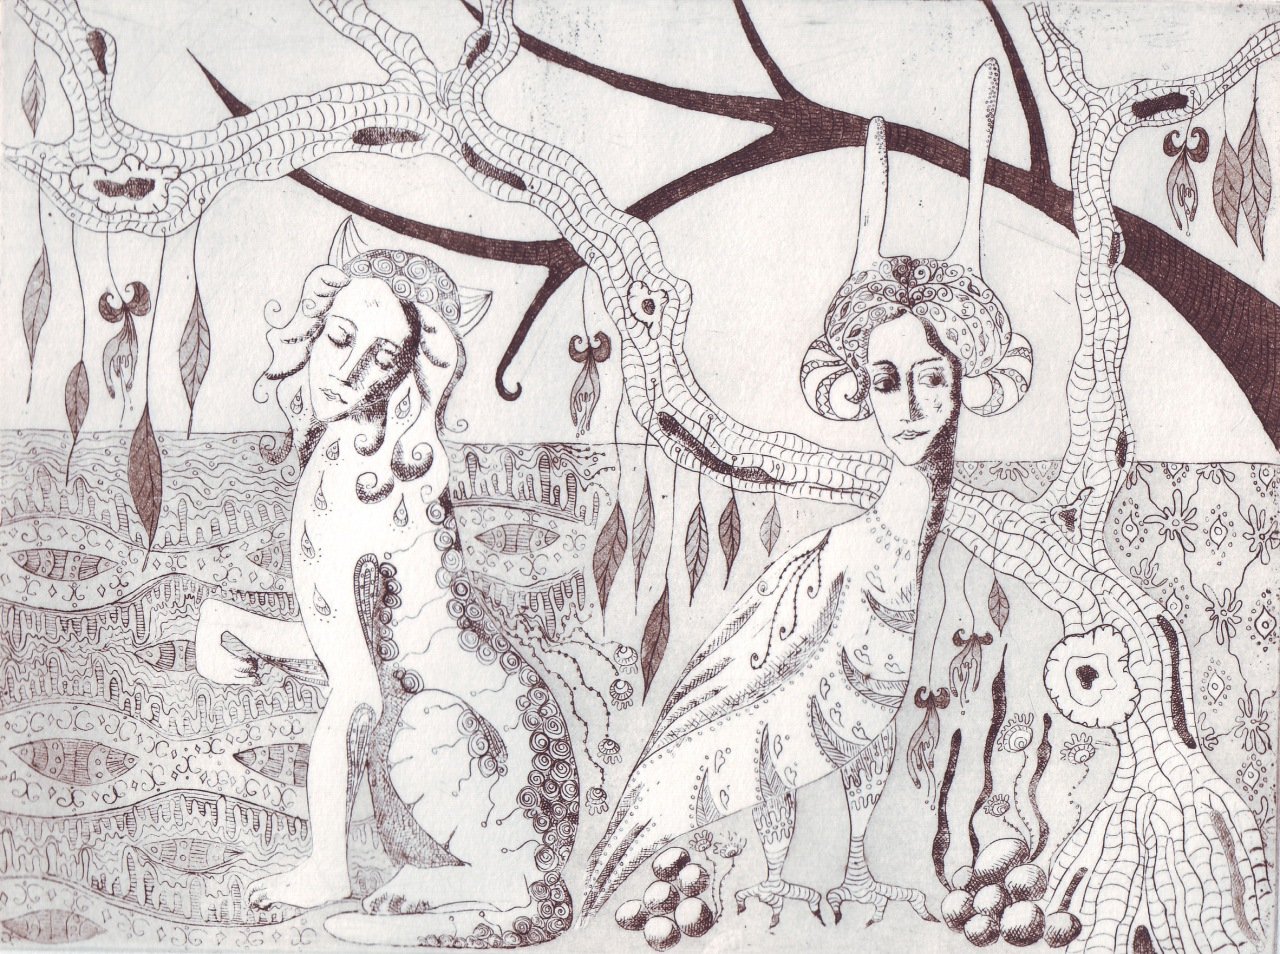 Intaglio Etching and Aquatint – She hides alllooks…